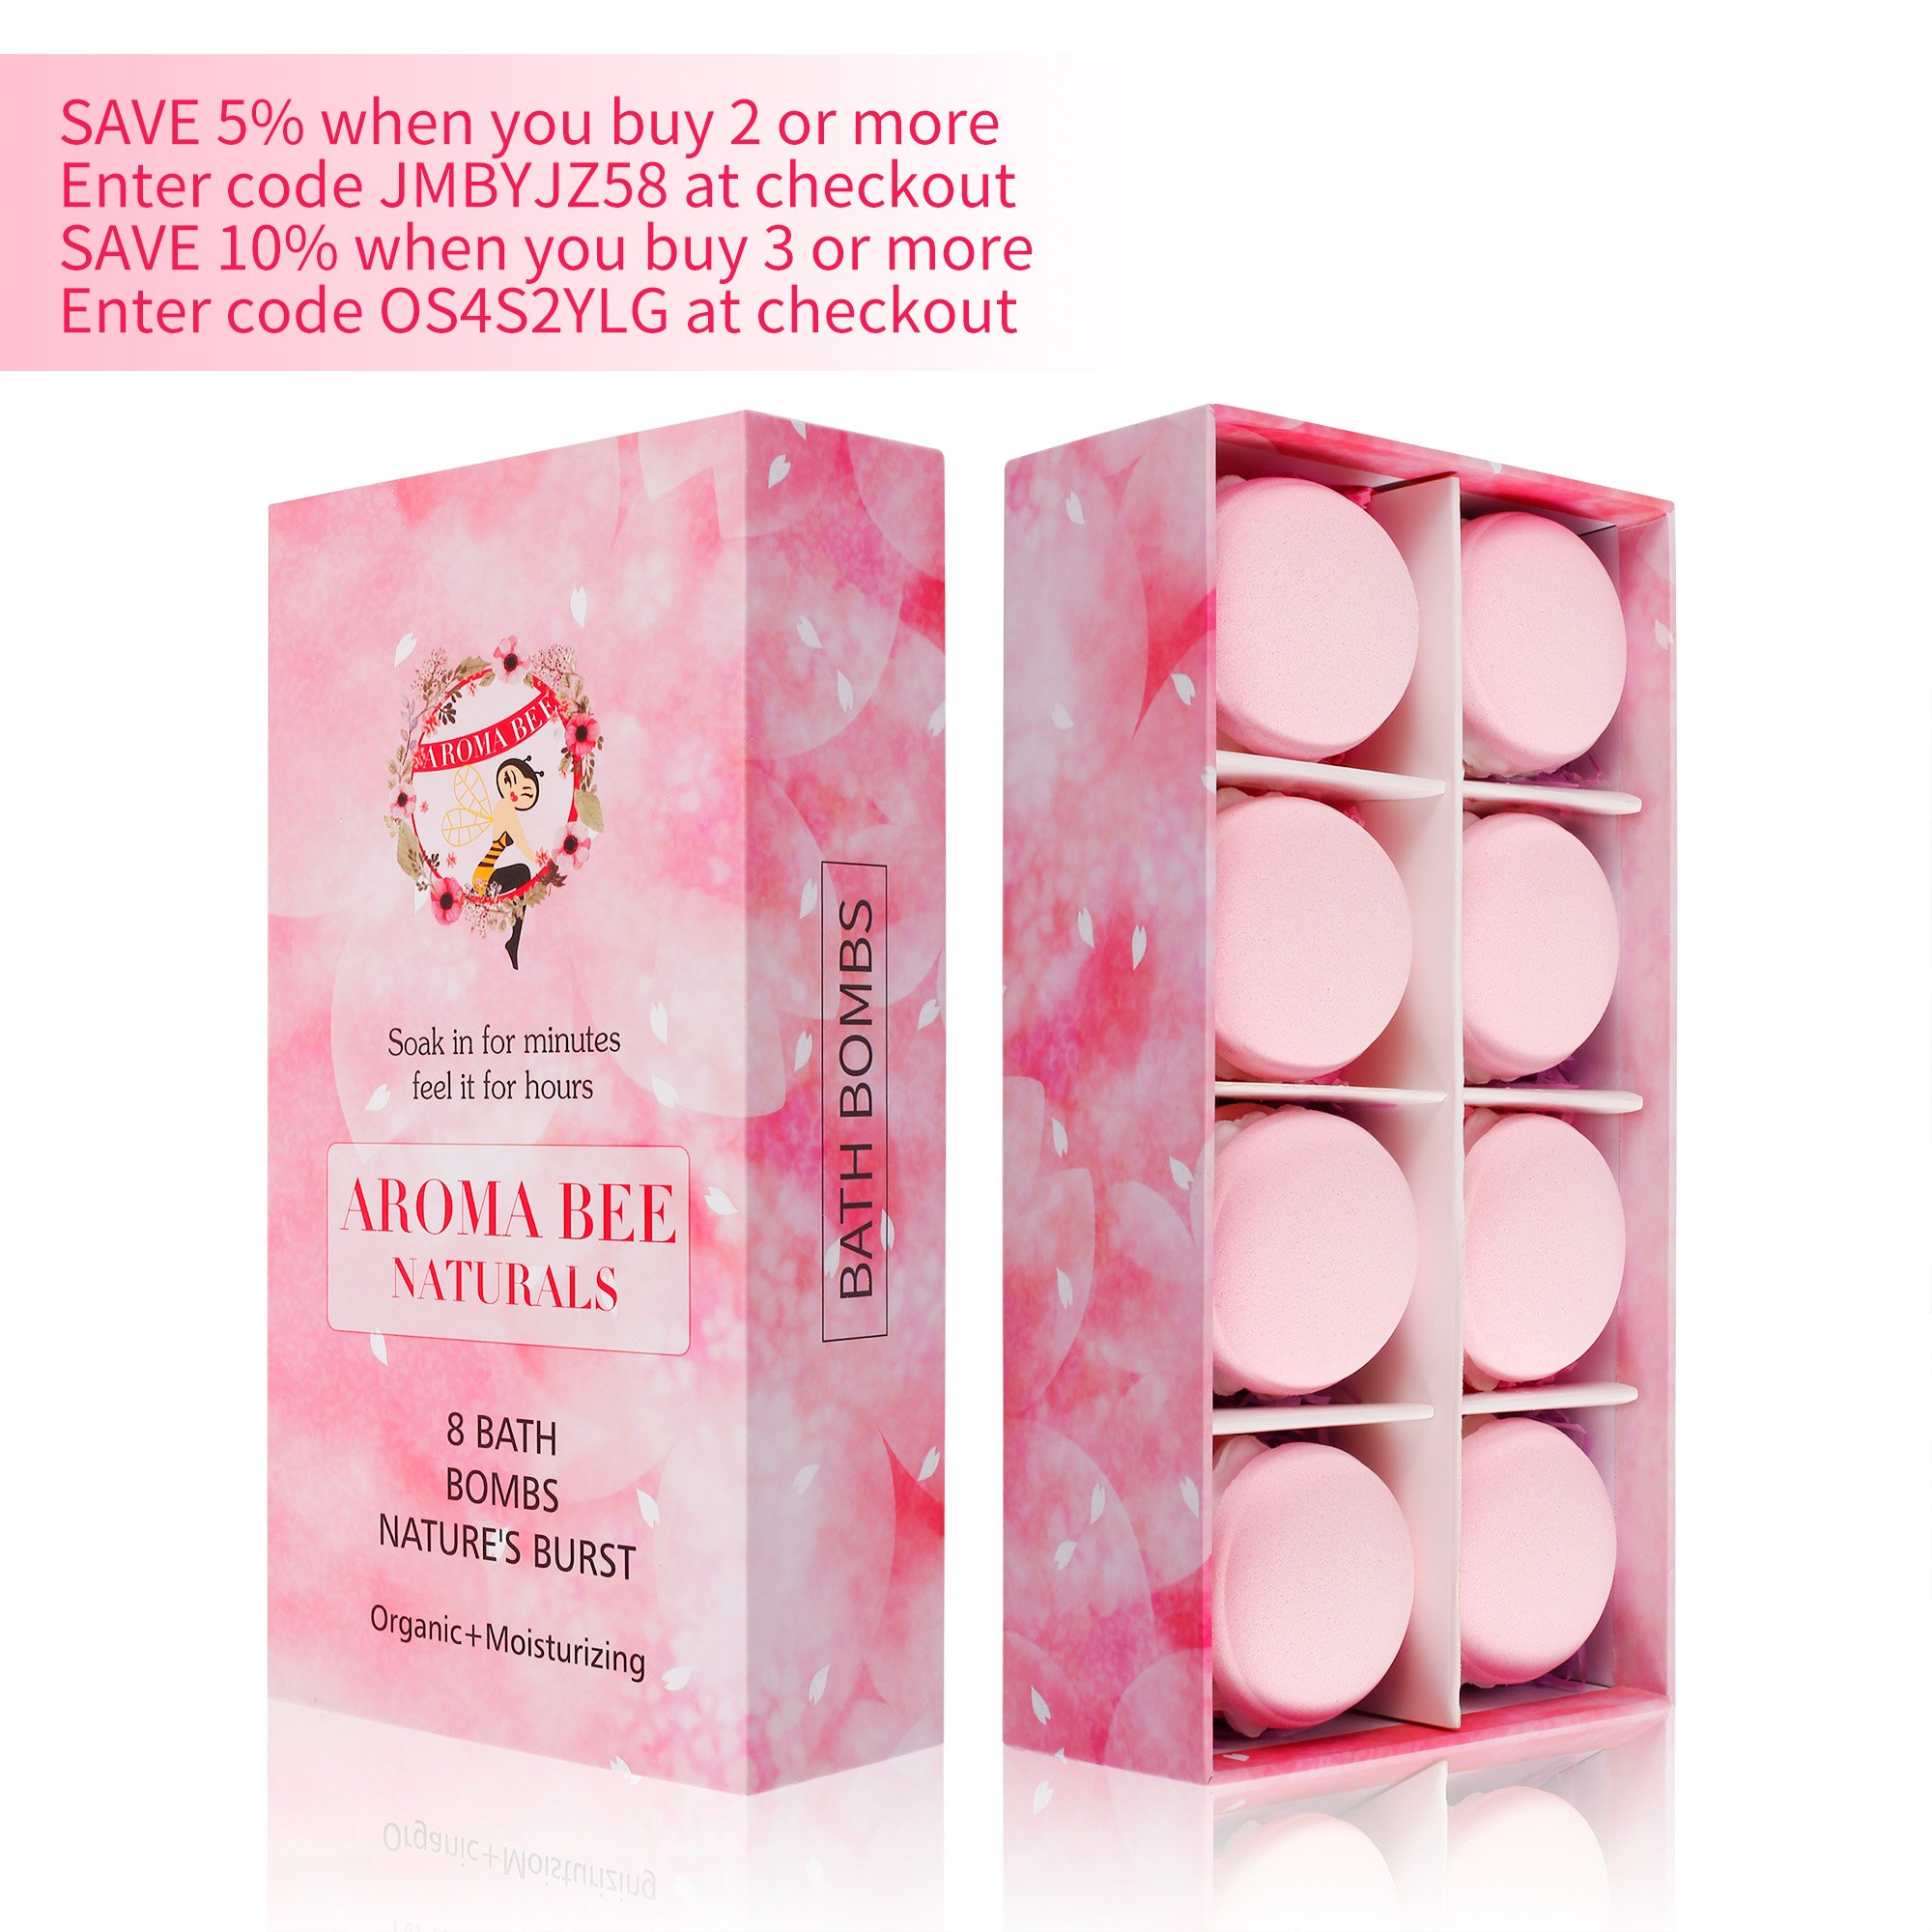 8 Bath Bombs Gift Set for Women Mothers Day Gifts Best Birthday Valentine Gift Ideas Natural Essential Oil Lush Fizzies by Aroma Bee (4.8 oz, Rose) by Aroma Bee (Image #6)